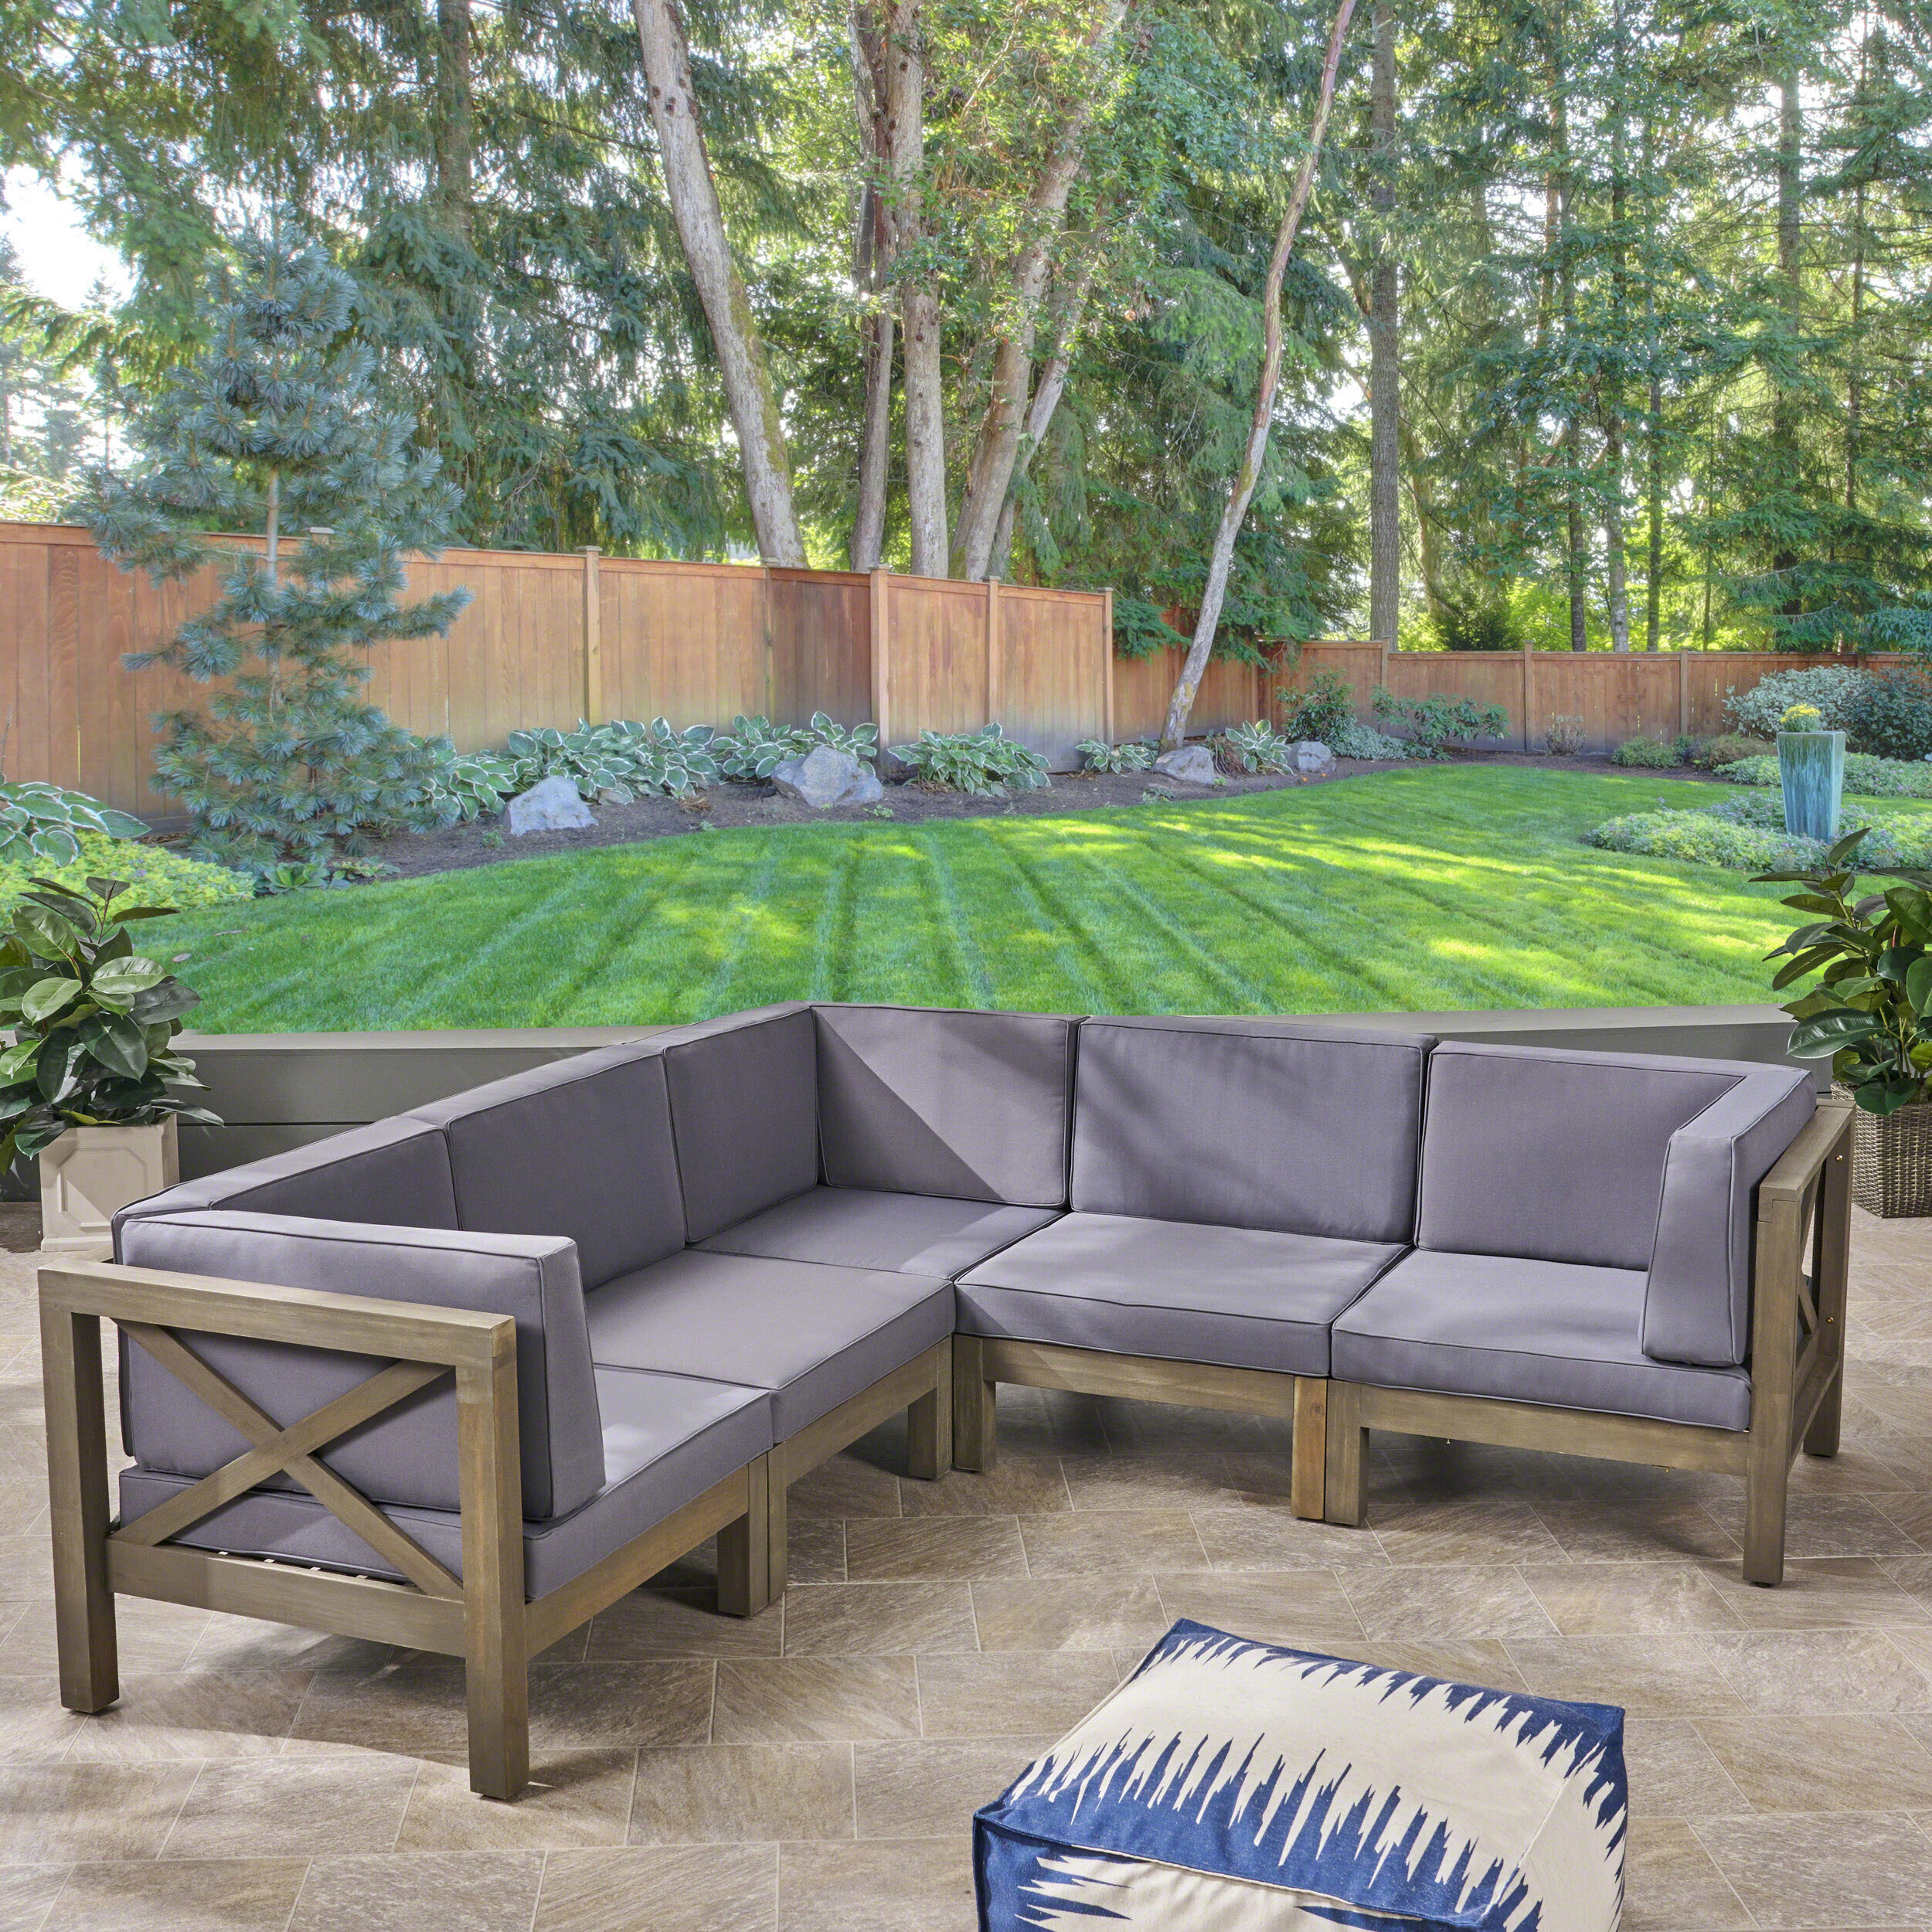 Wayfair & Ellison Patio Sectional with Cushions